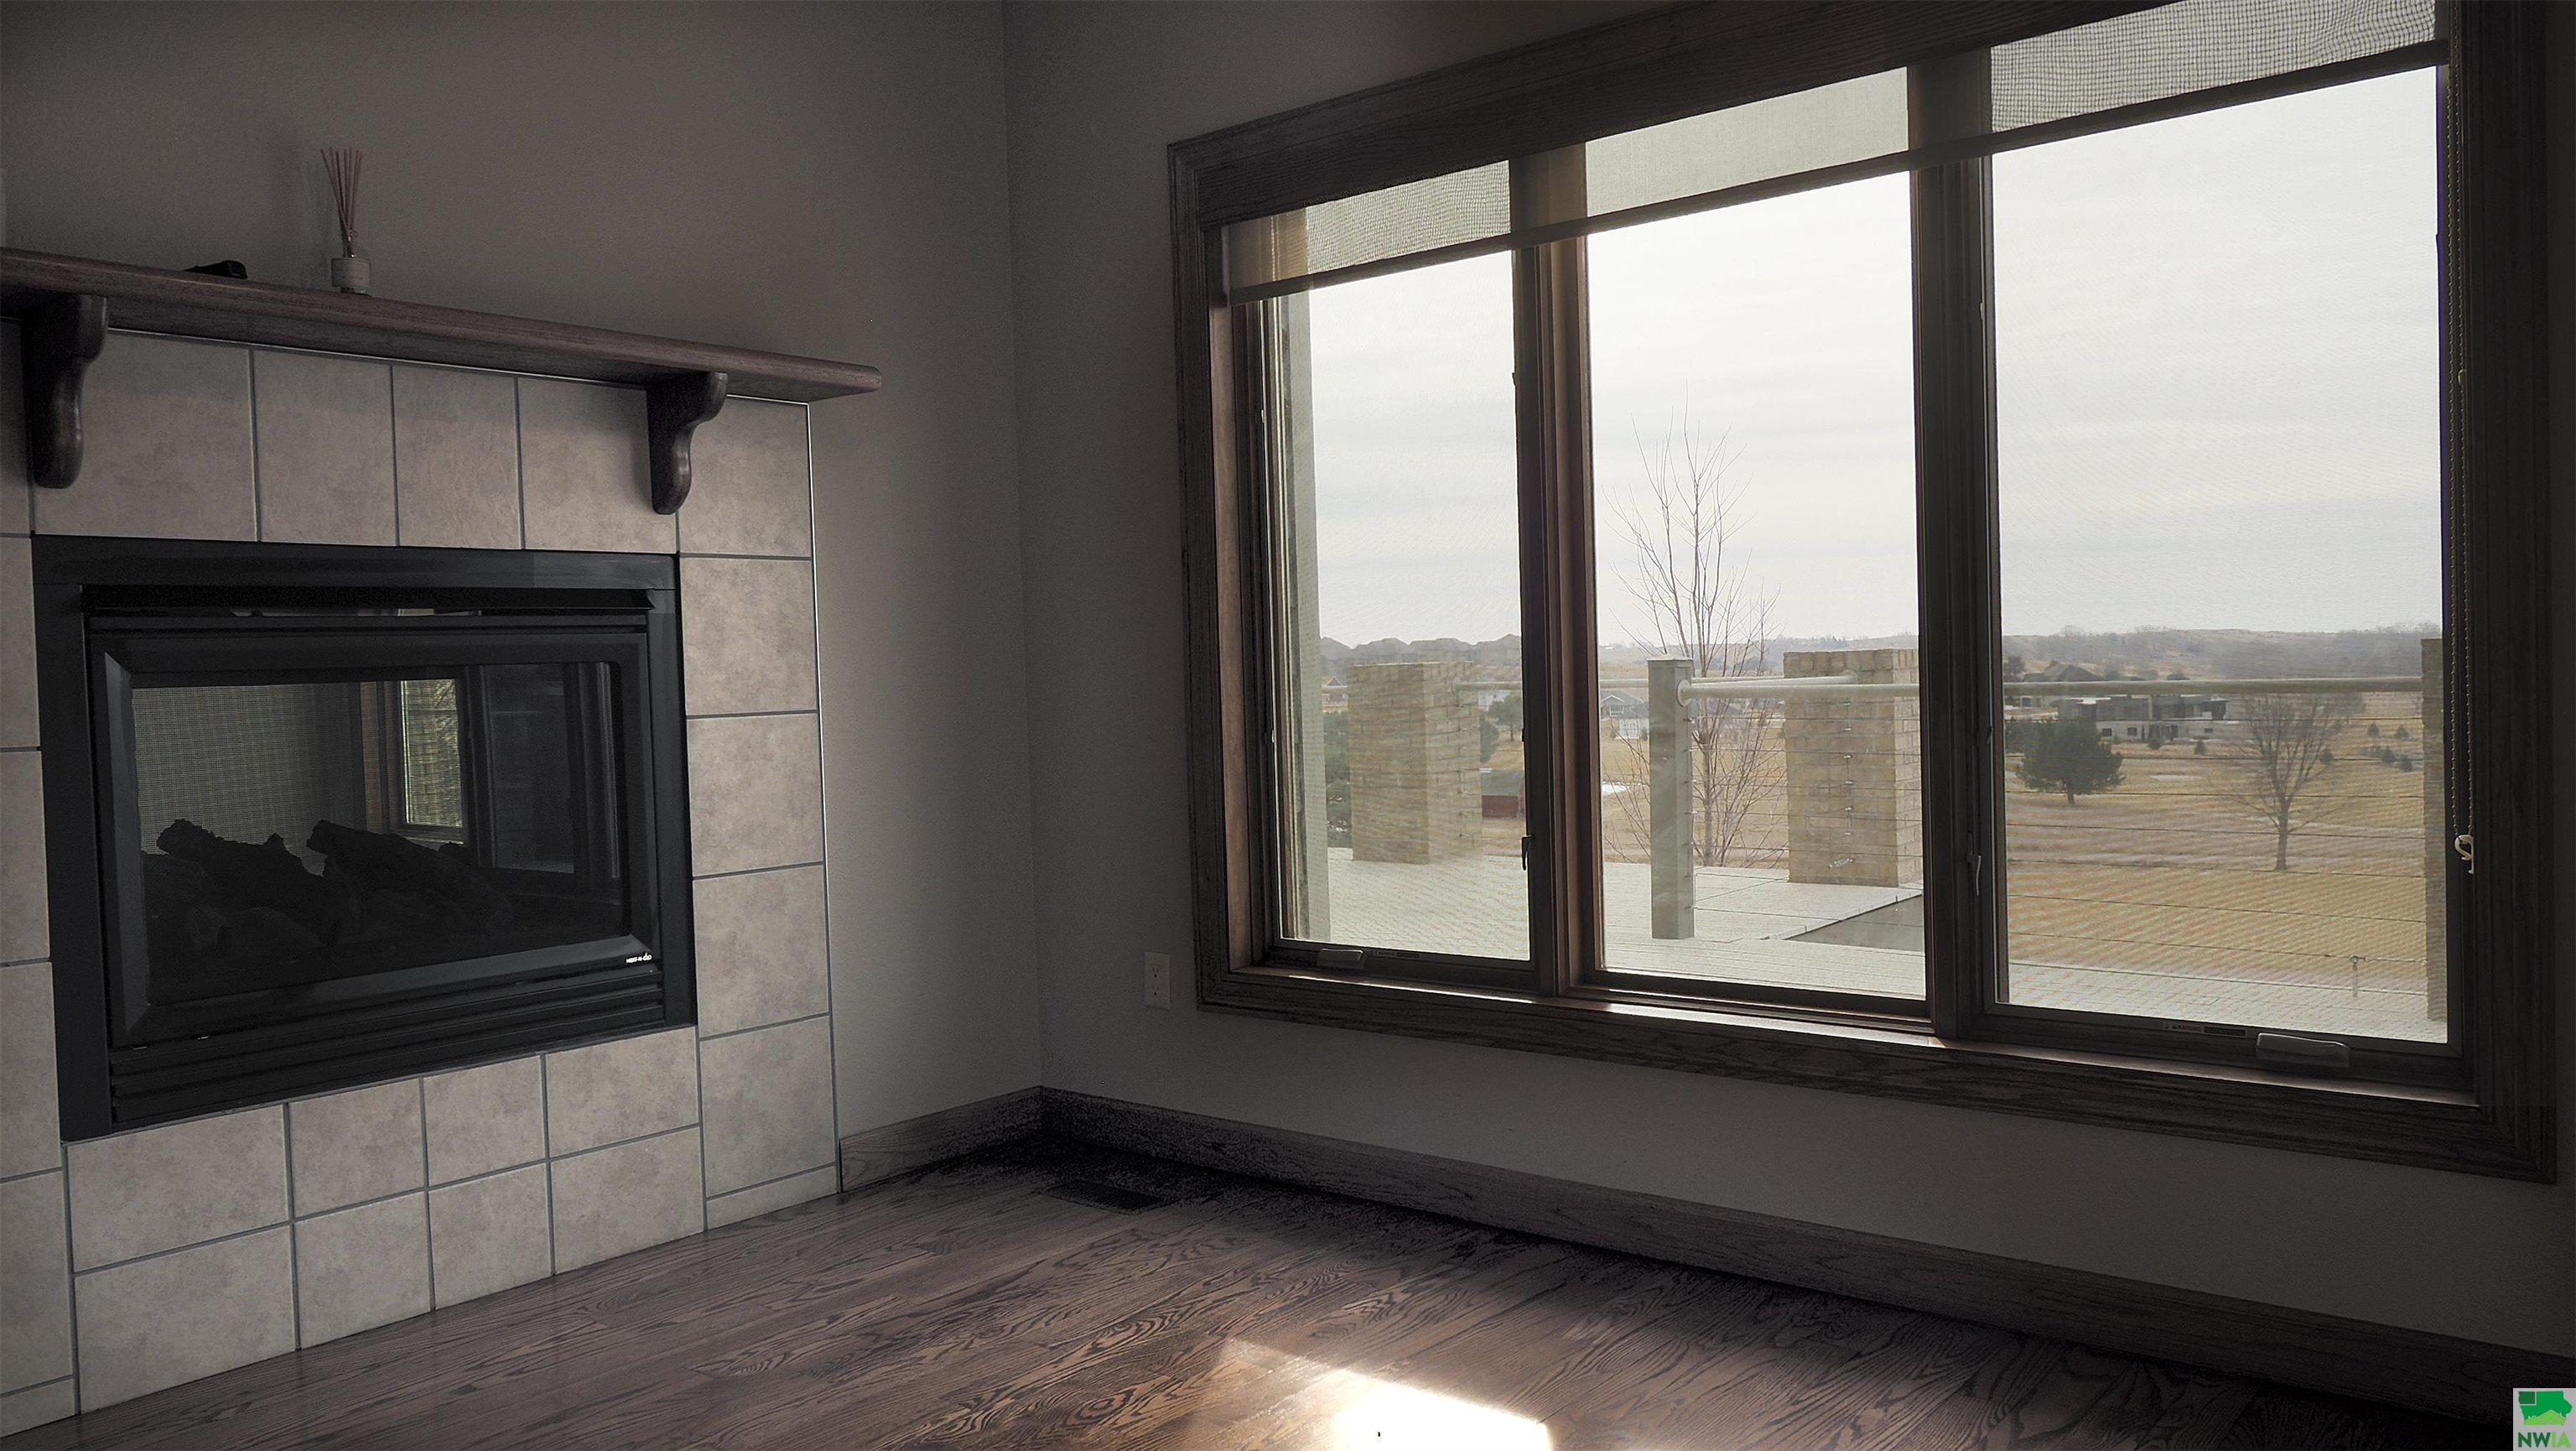 MLS# 814294 for Sale